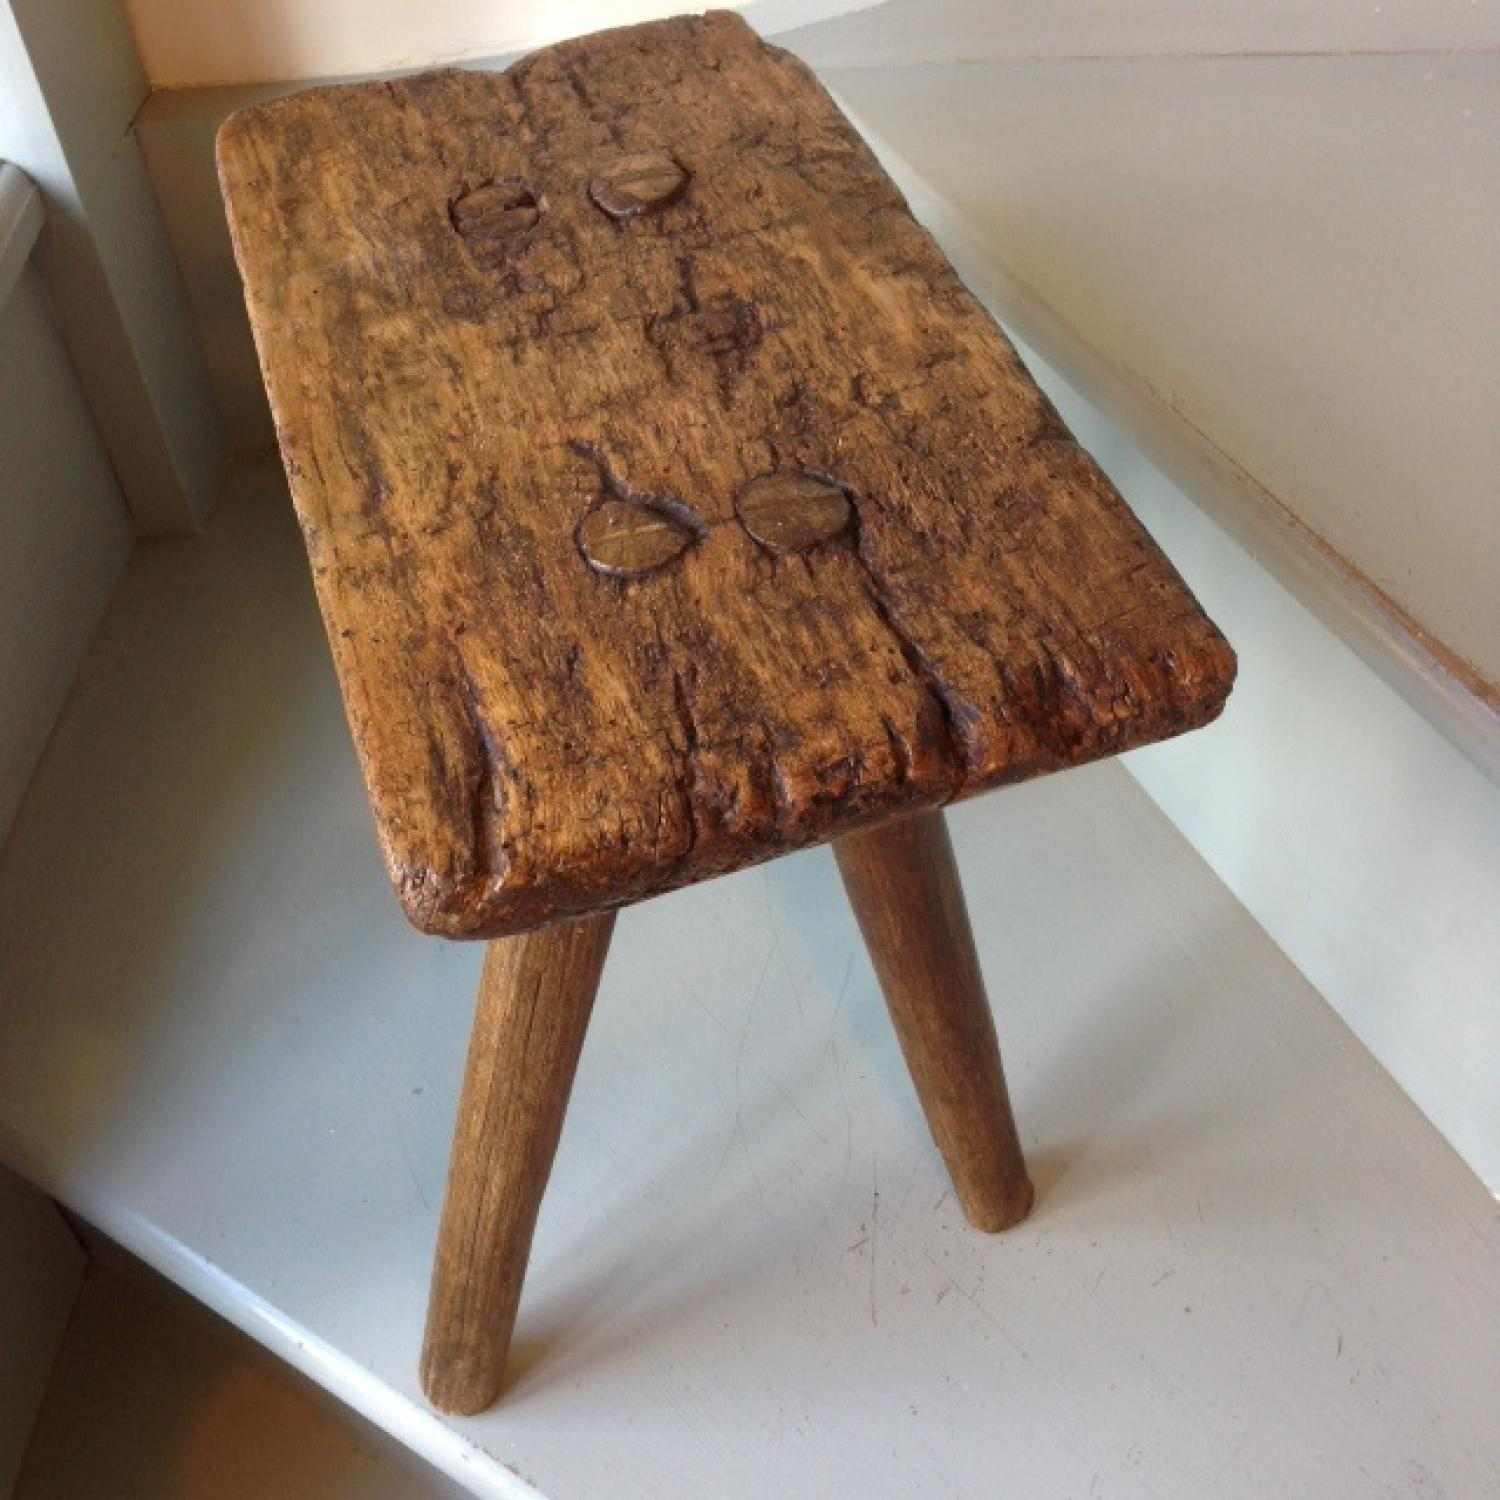 19th Cent 4 Legged Country Stool In The Antique Dairy